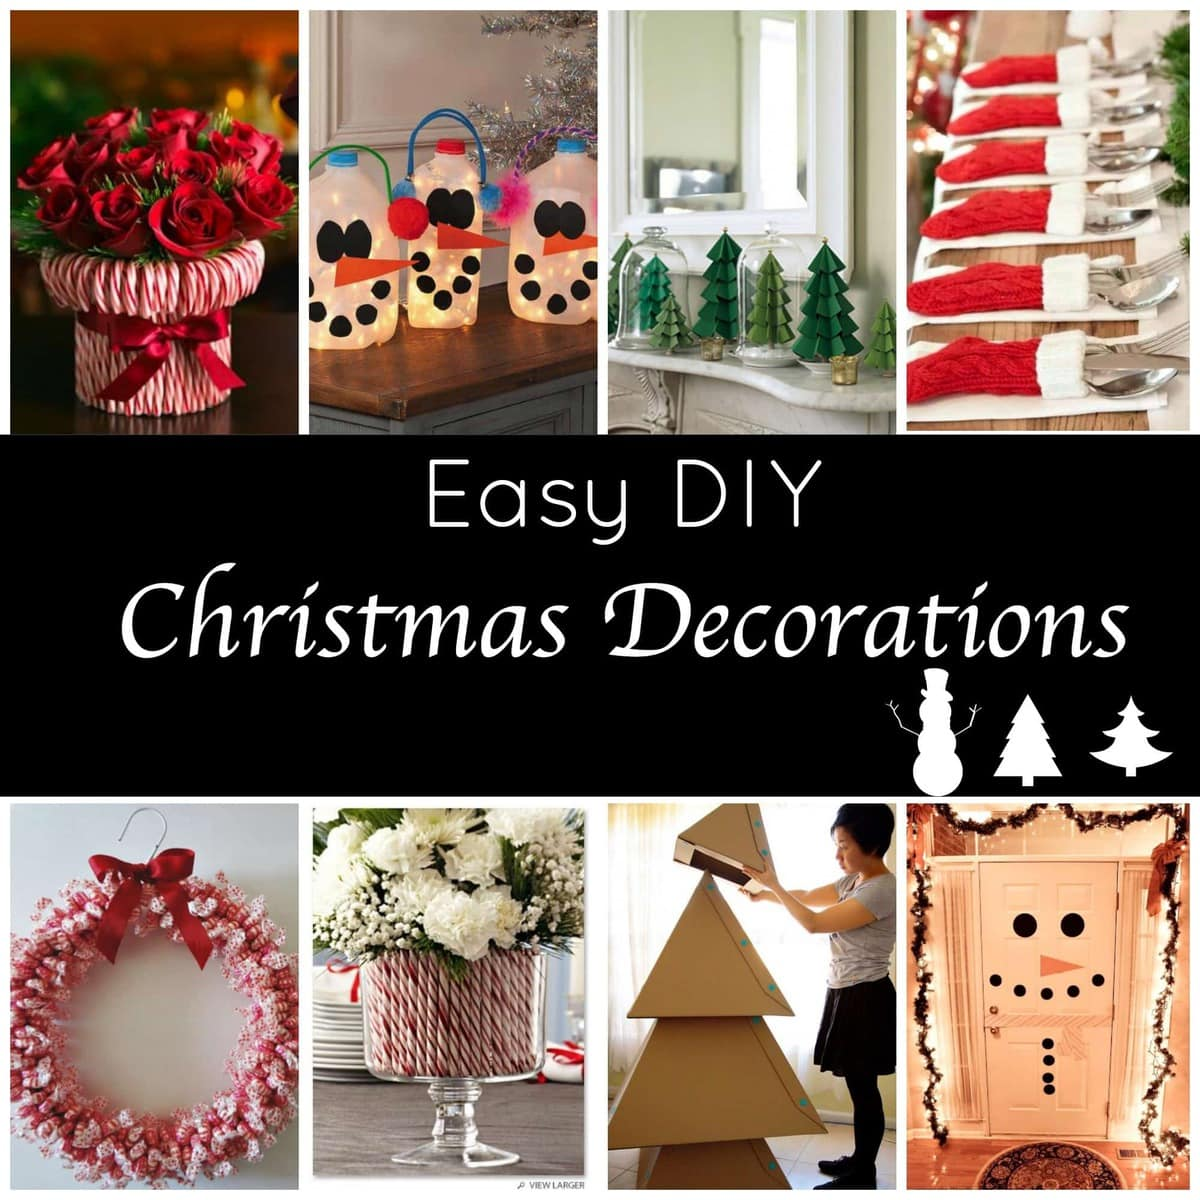 Cute easy holiday decorations page 2 of 2 princess Christmas decorating diy